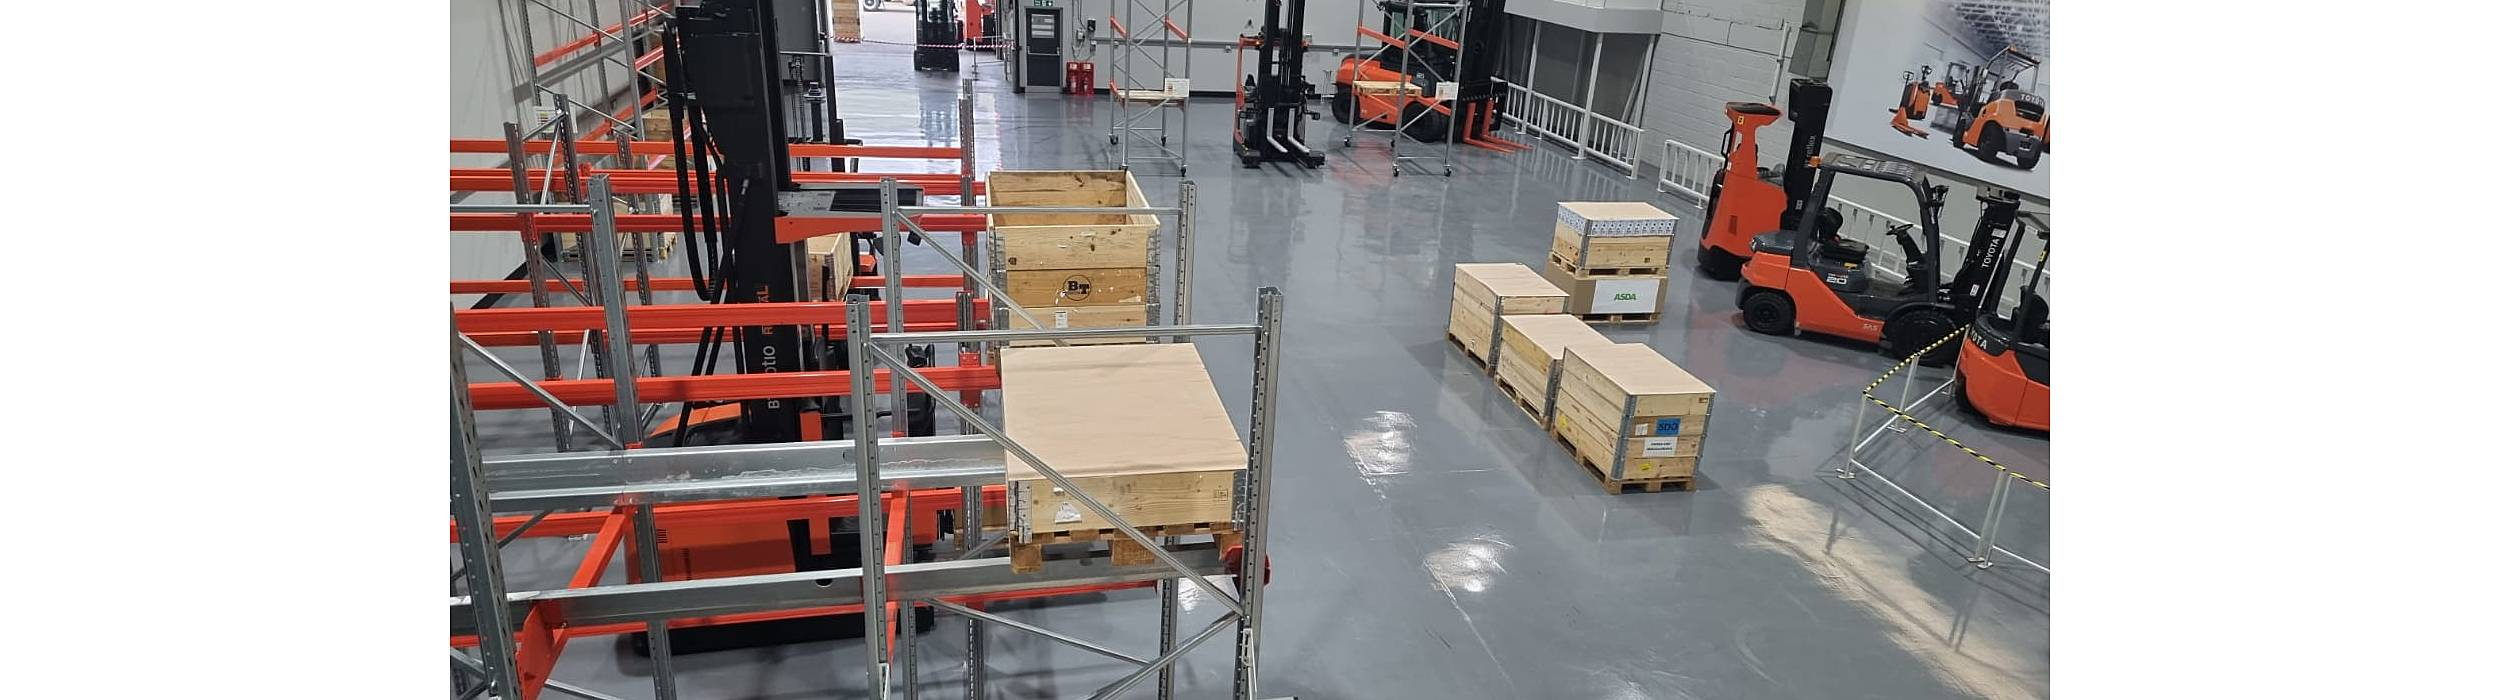 warehouse automation facility in leicester